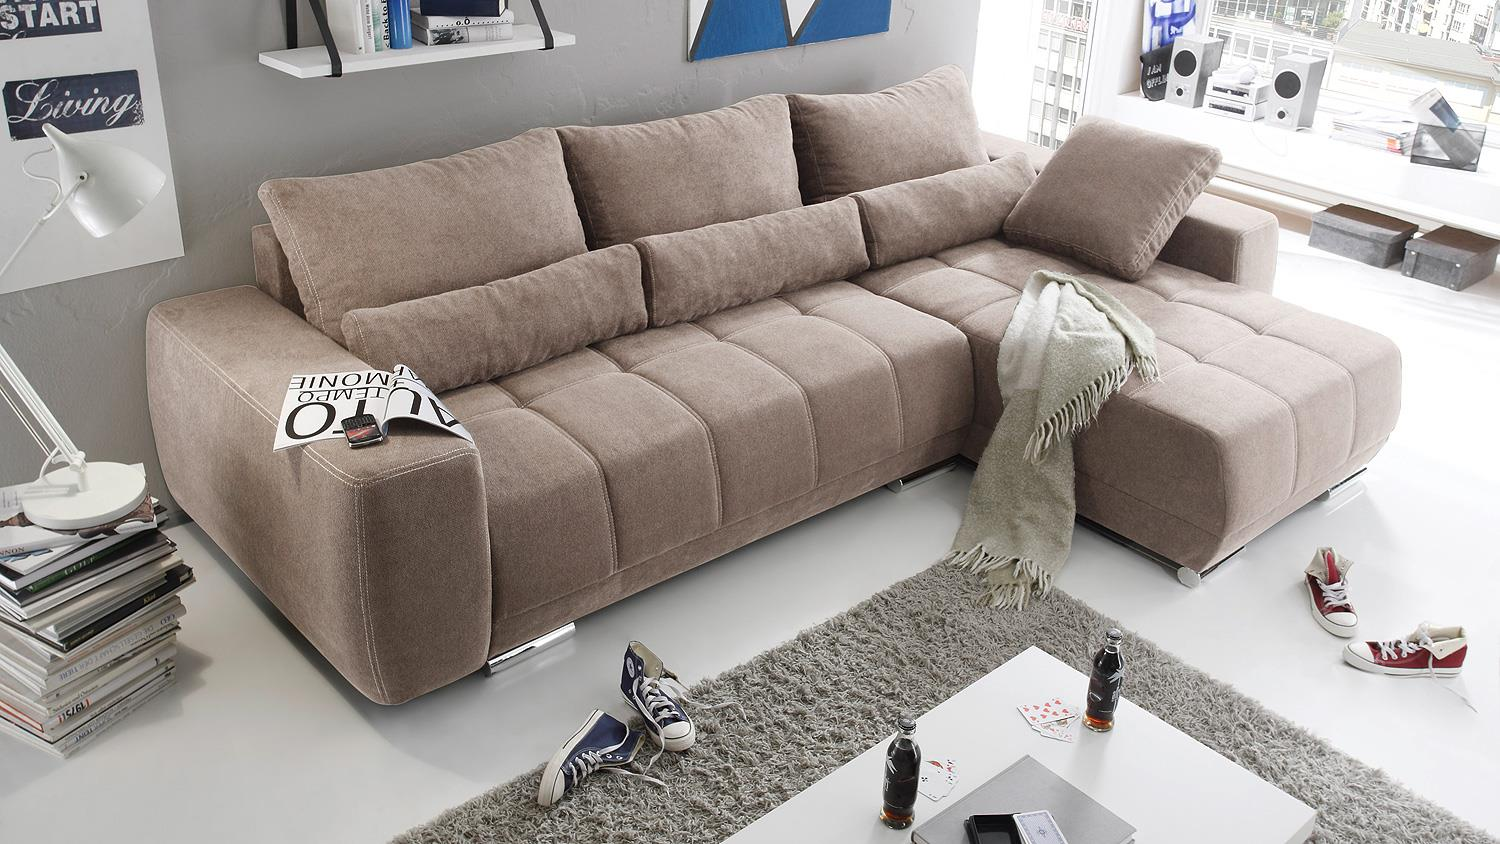 ecksofa lopez sofa wohnlandschaft taupe mit schlaffunktion. Black Bedroom Furniture Sets. Home Design Ideas